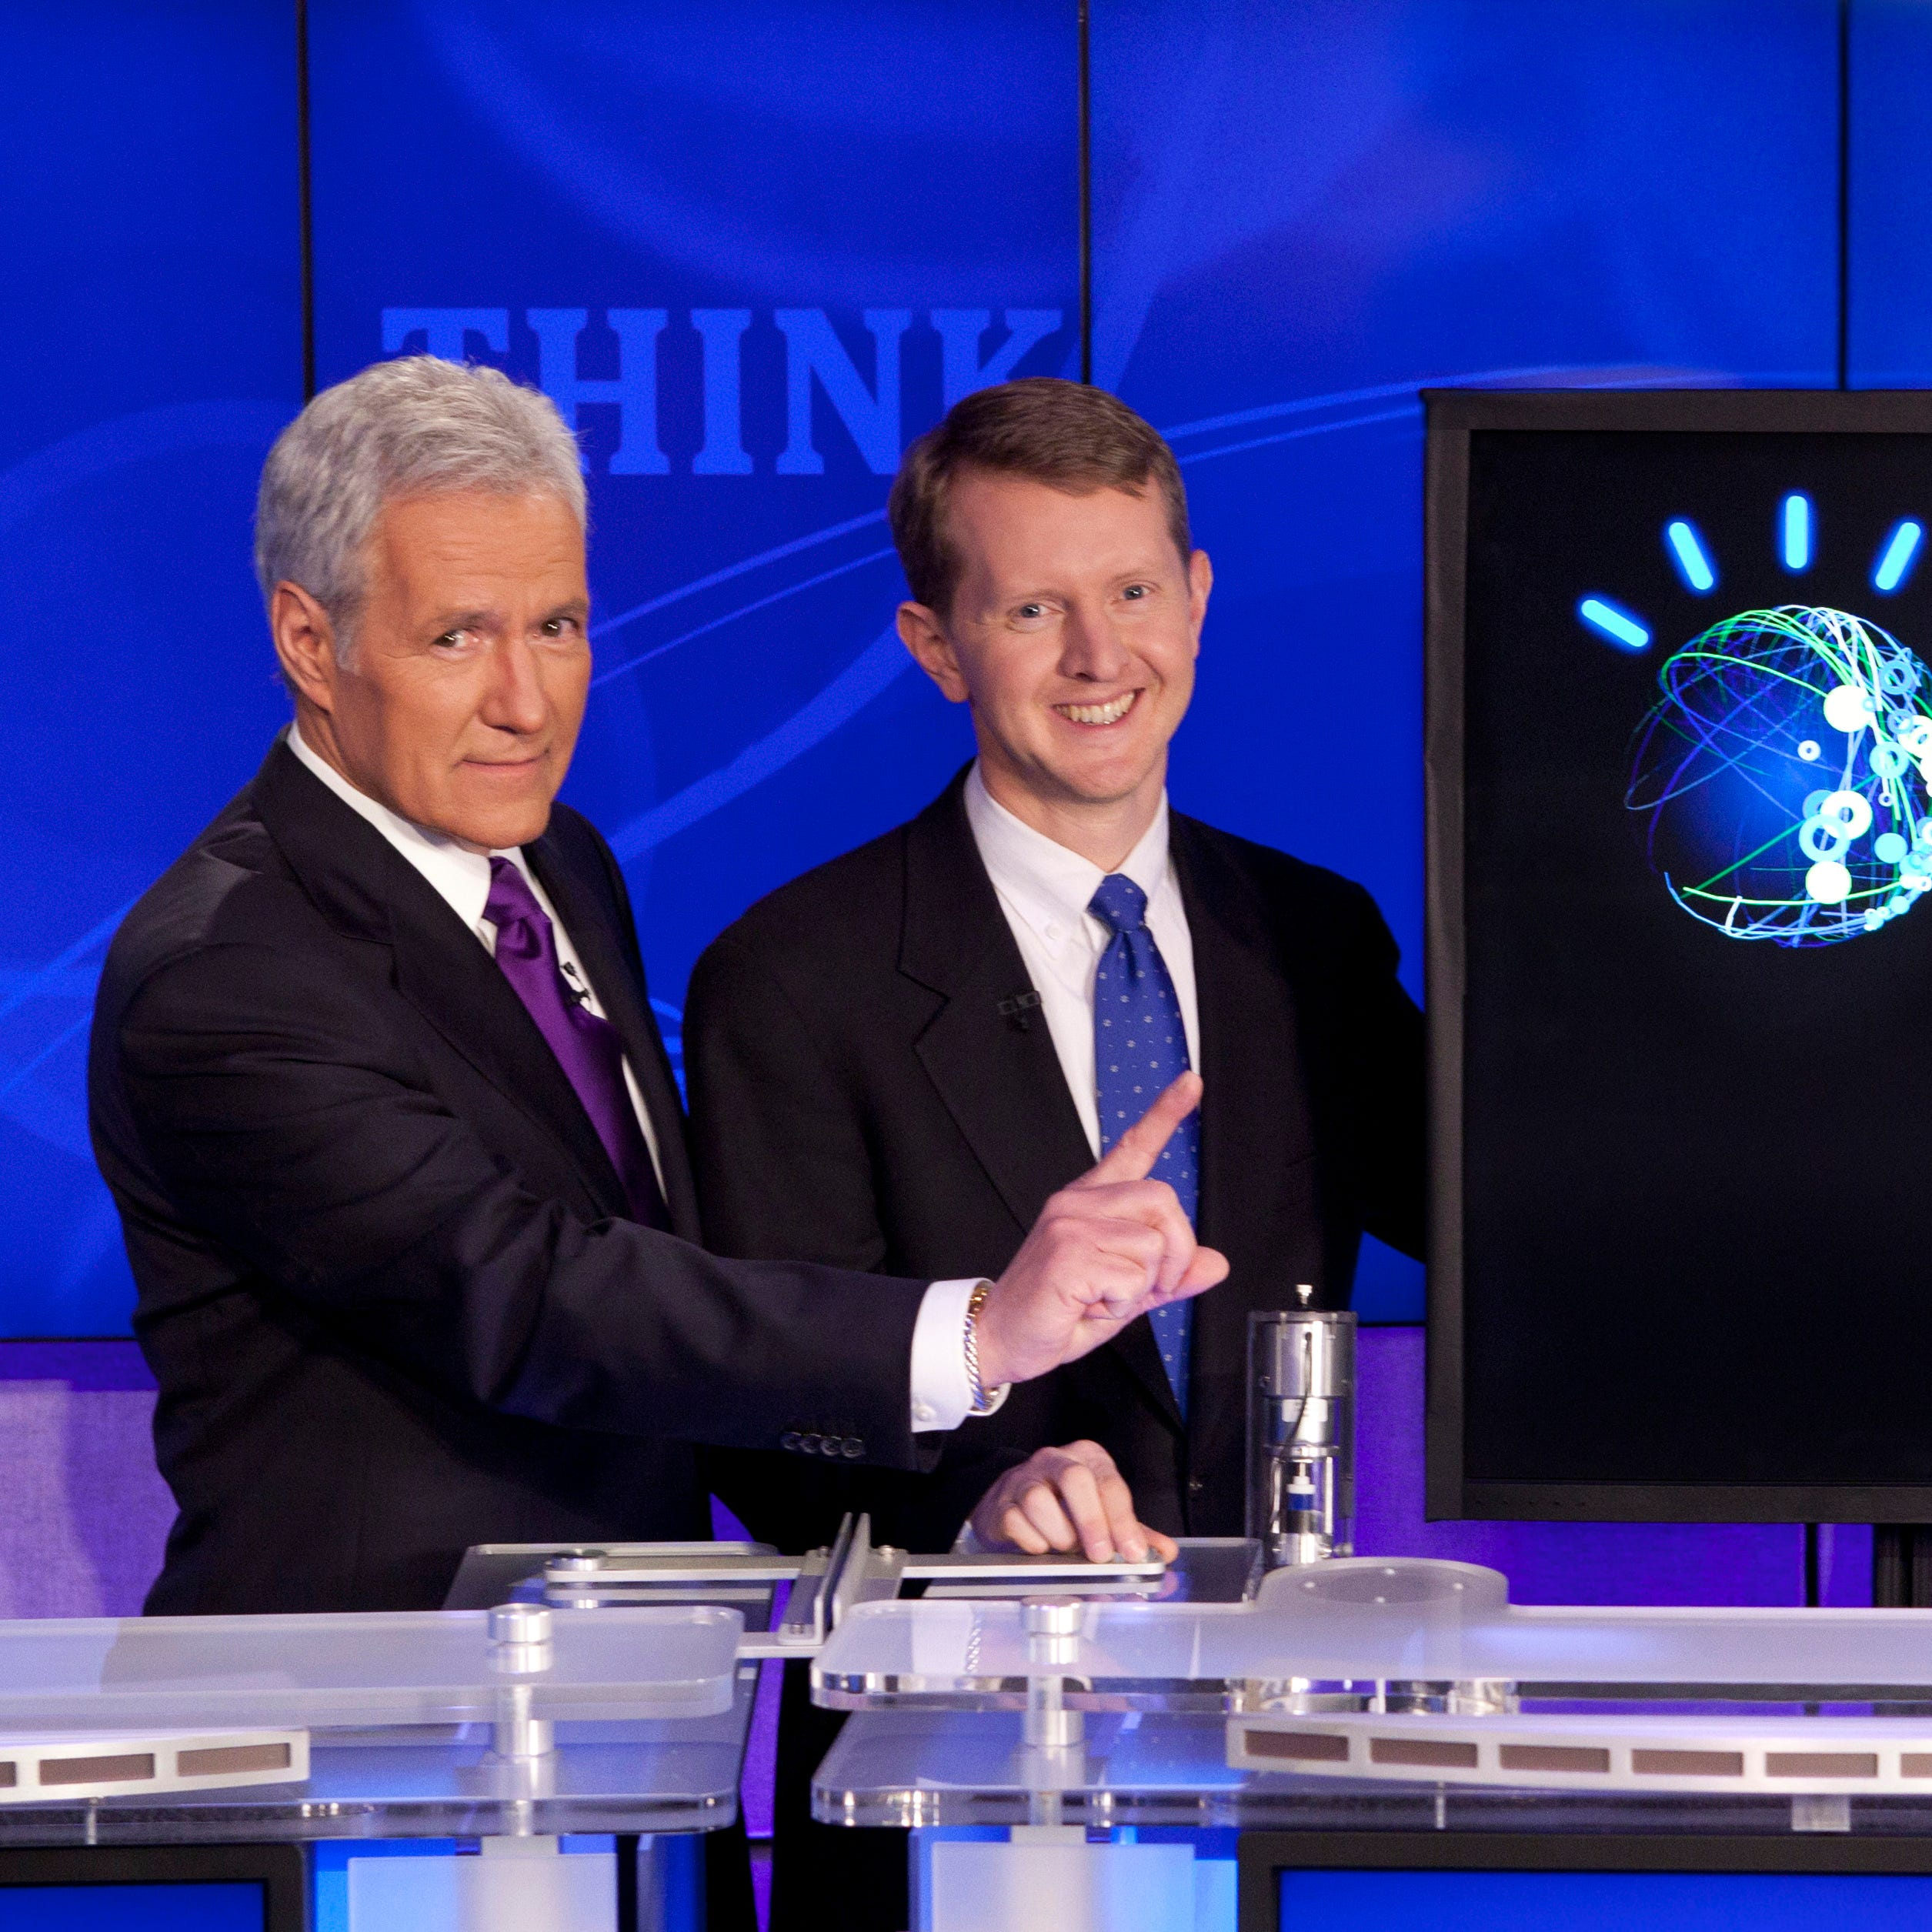 Alex Trebek and Ken Jennings.